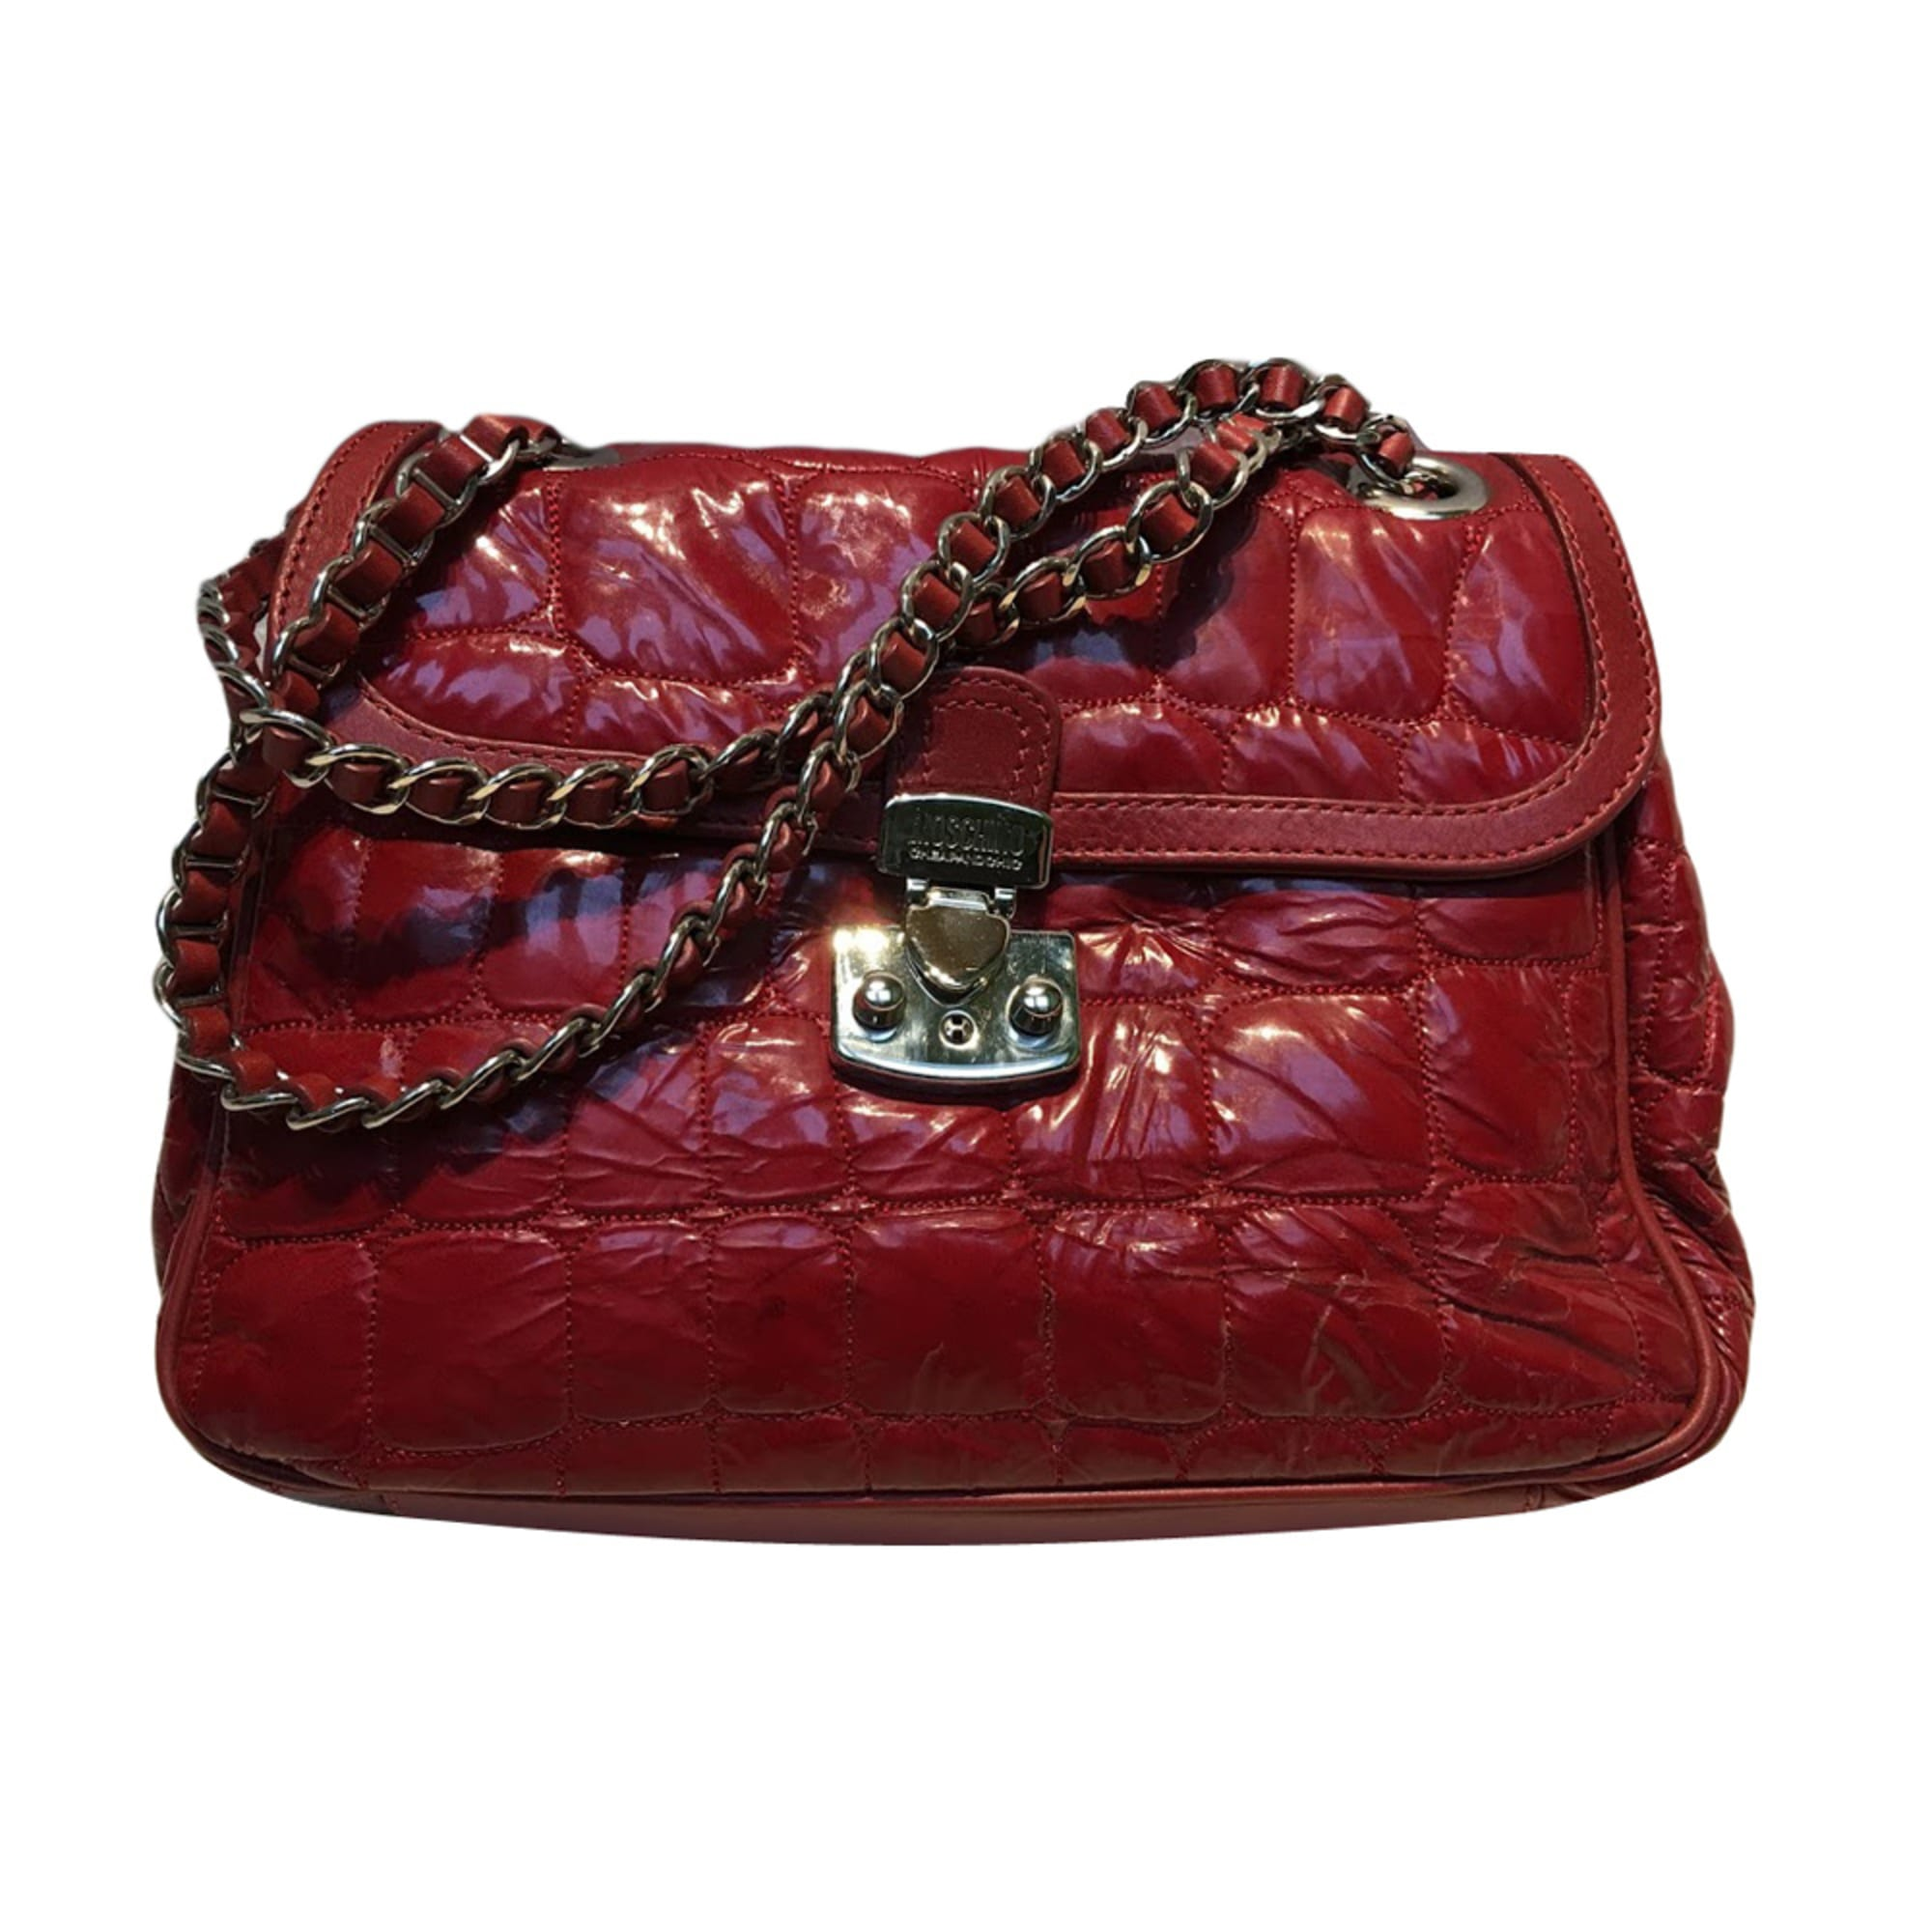 3c0935a3d2 Sac à main en cuir MOSCHINO CHEAP AND CHIC rouge - 6759366